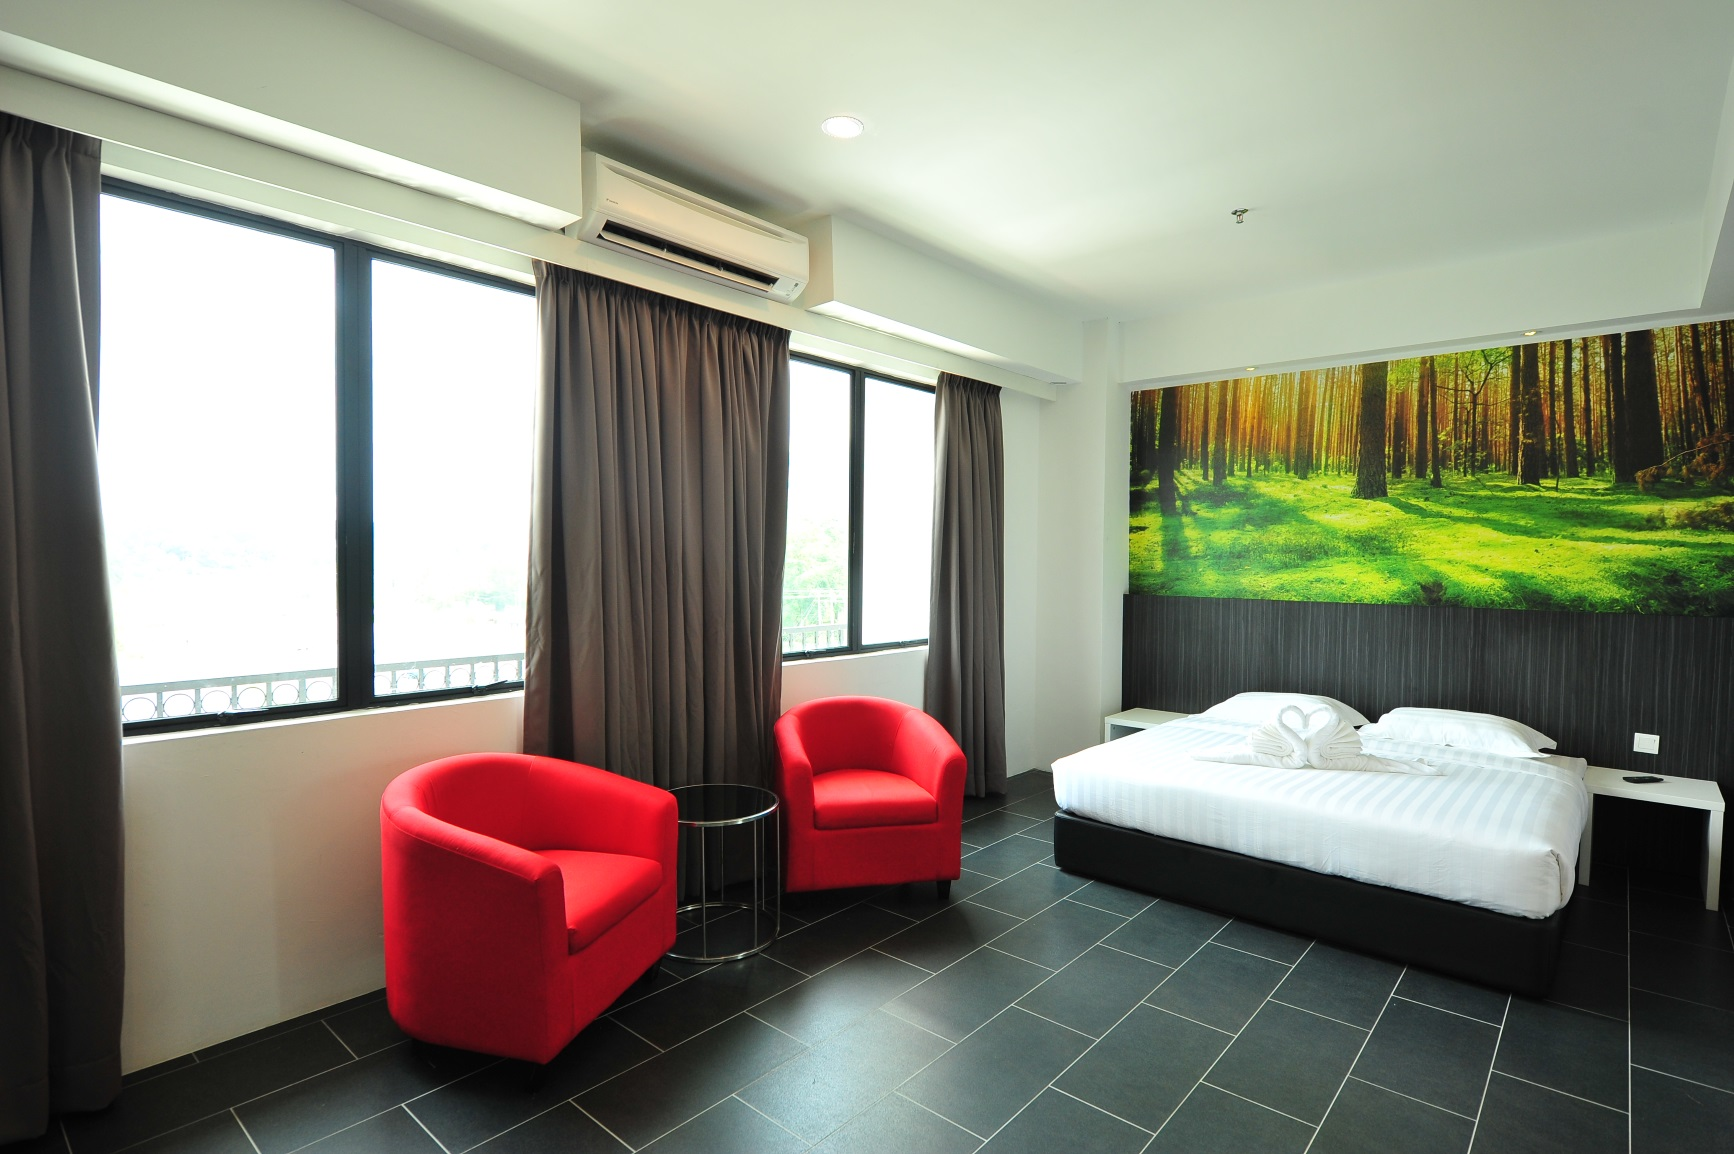 Hotel Executive Room with Sitting Area